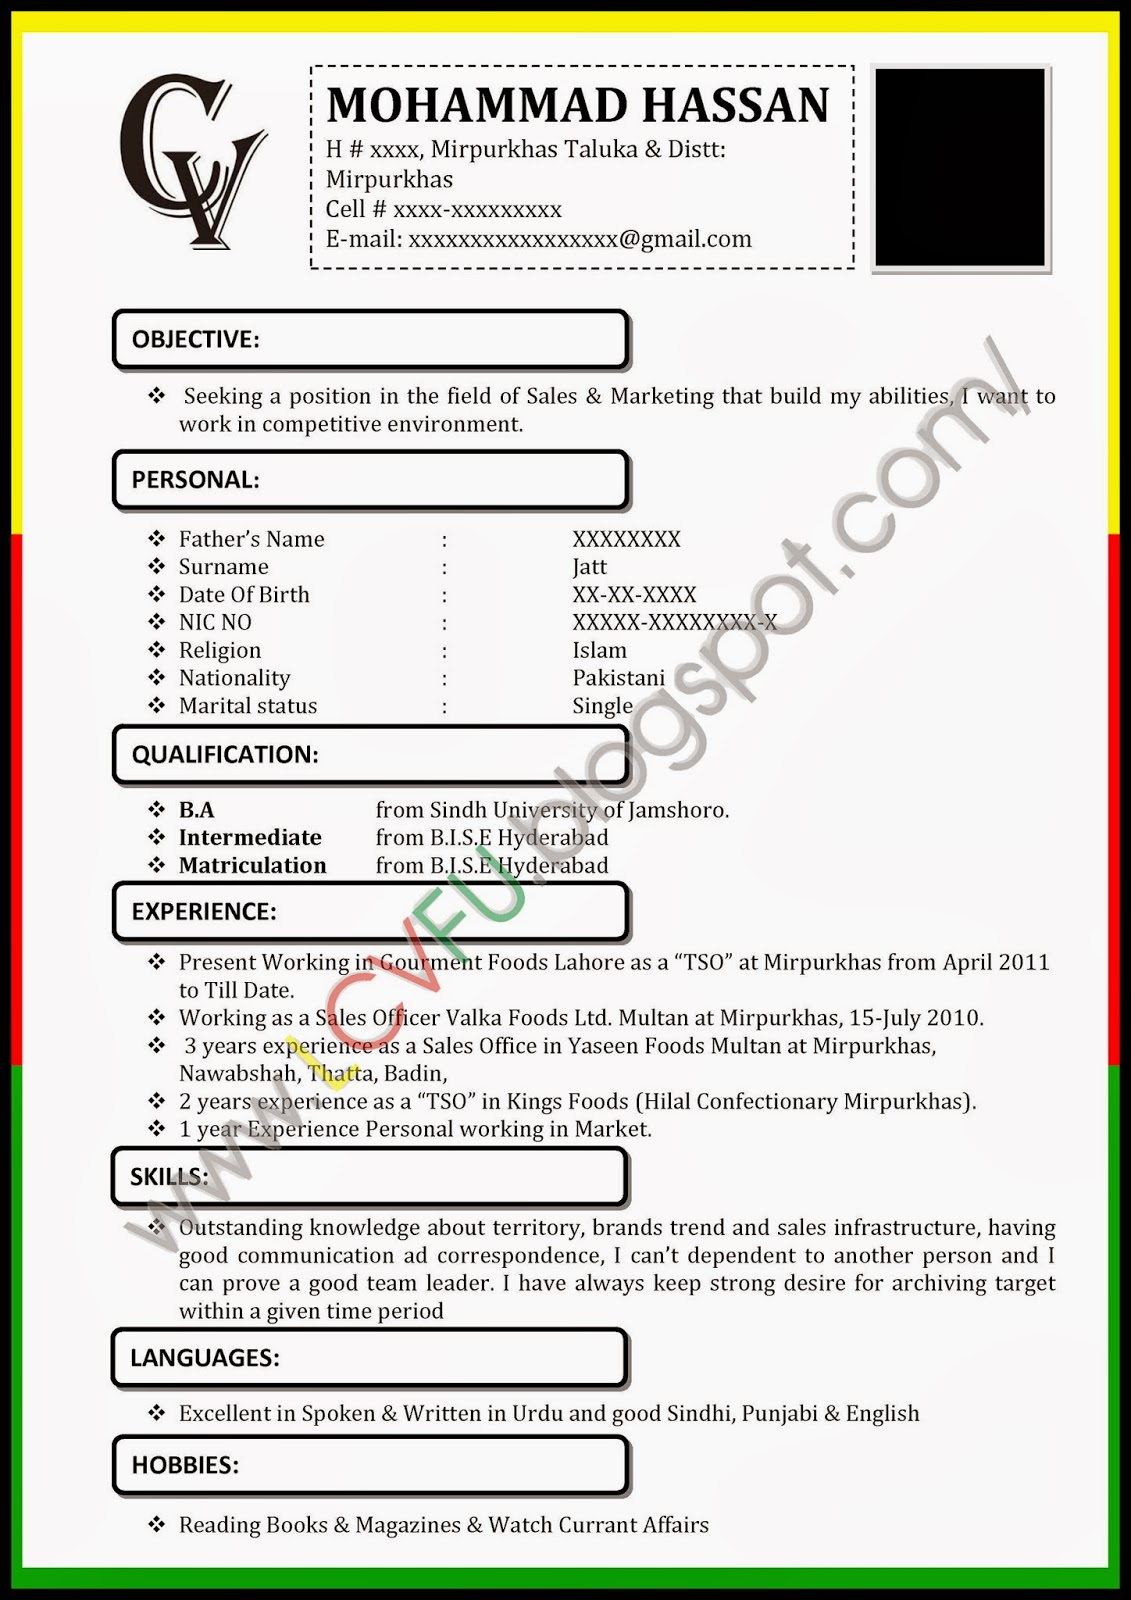 cv format ms word - Etame.mibawa.co